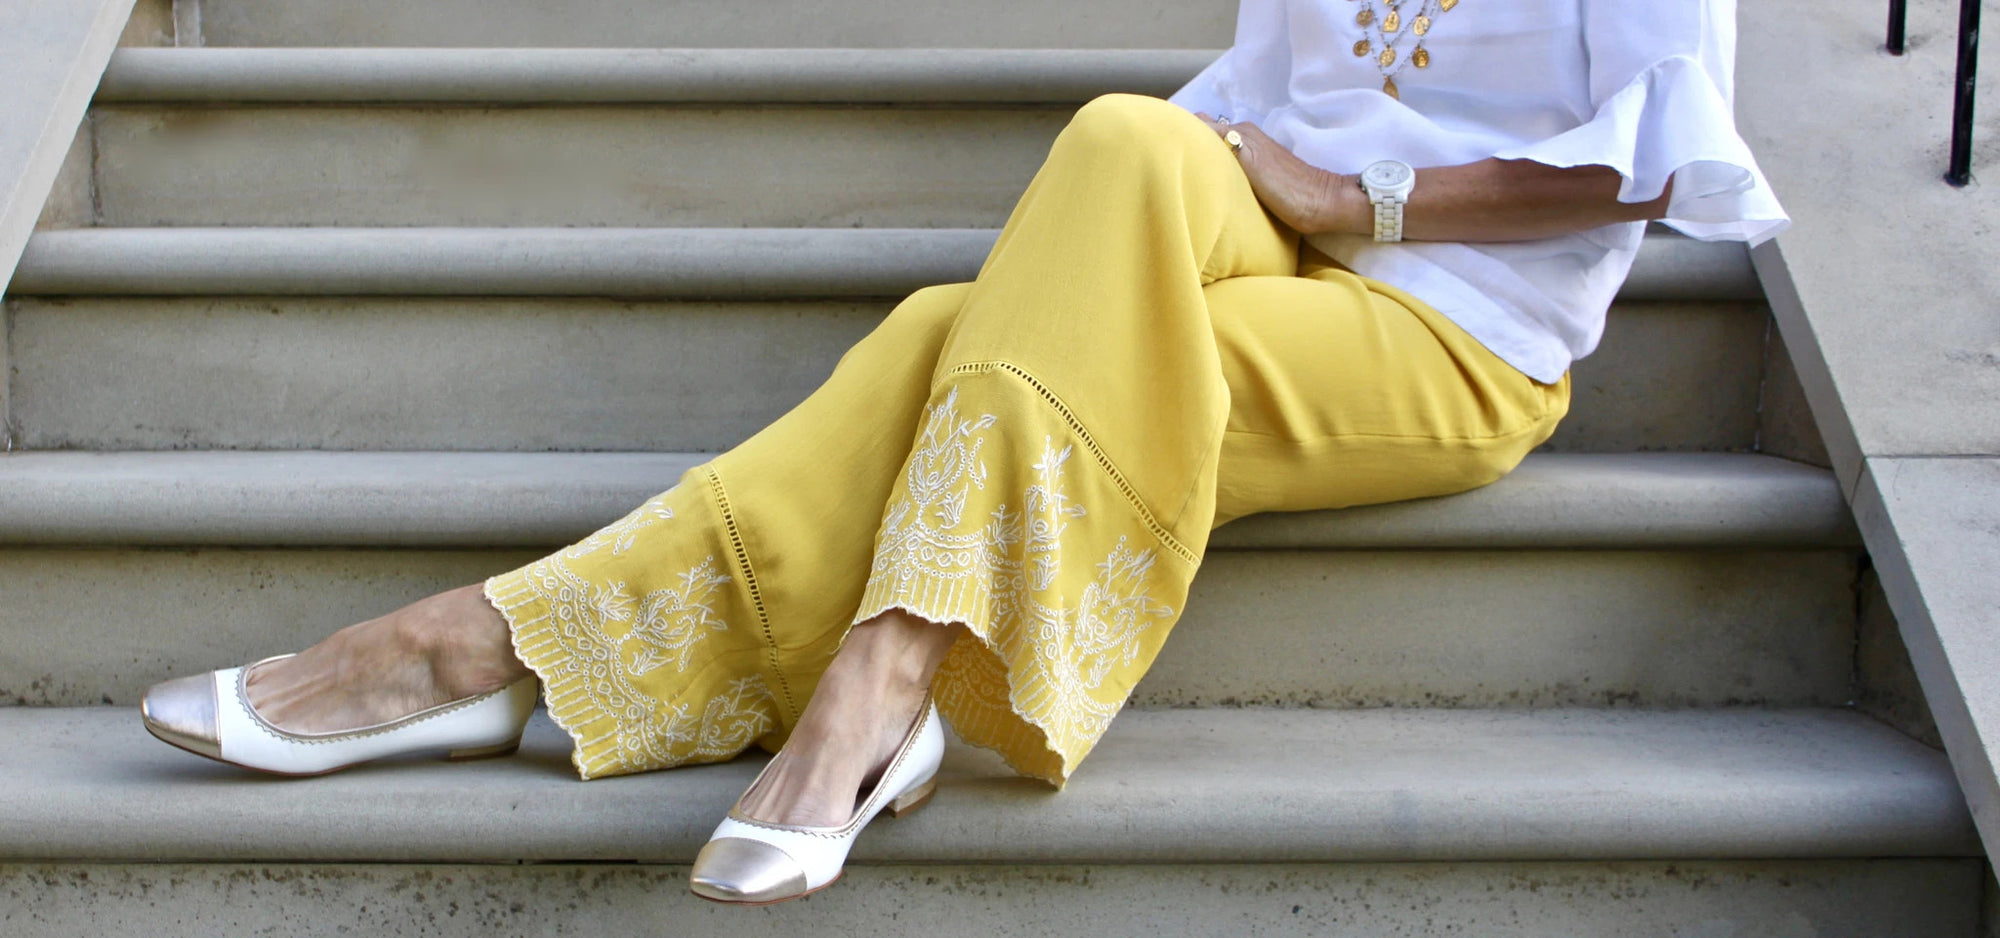 White and gold pumps with half inch heel give comfort and elegance.